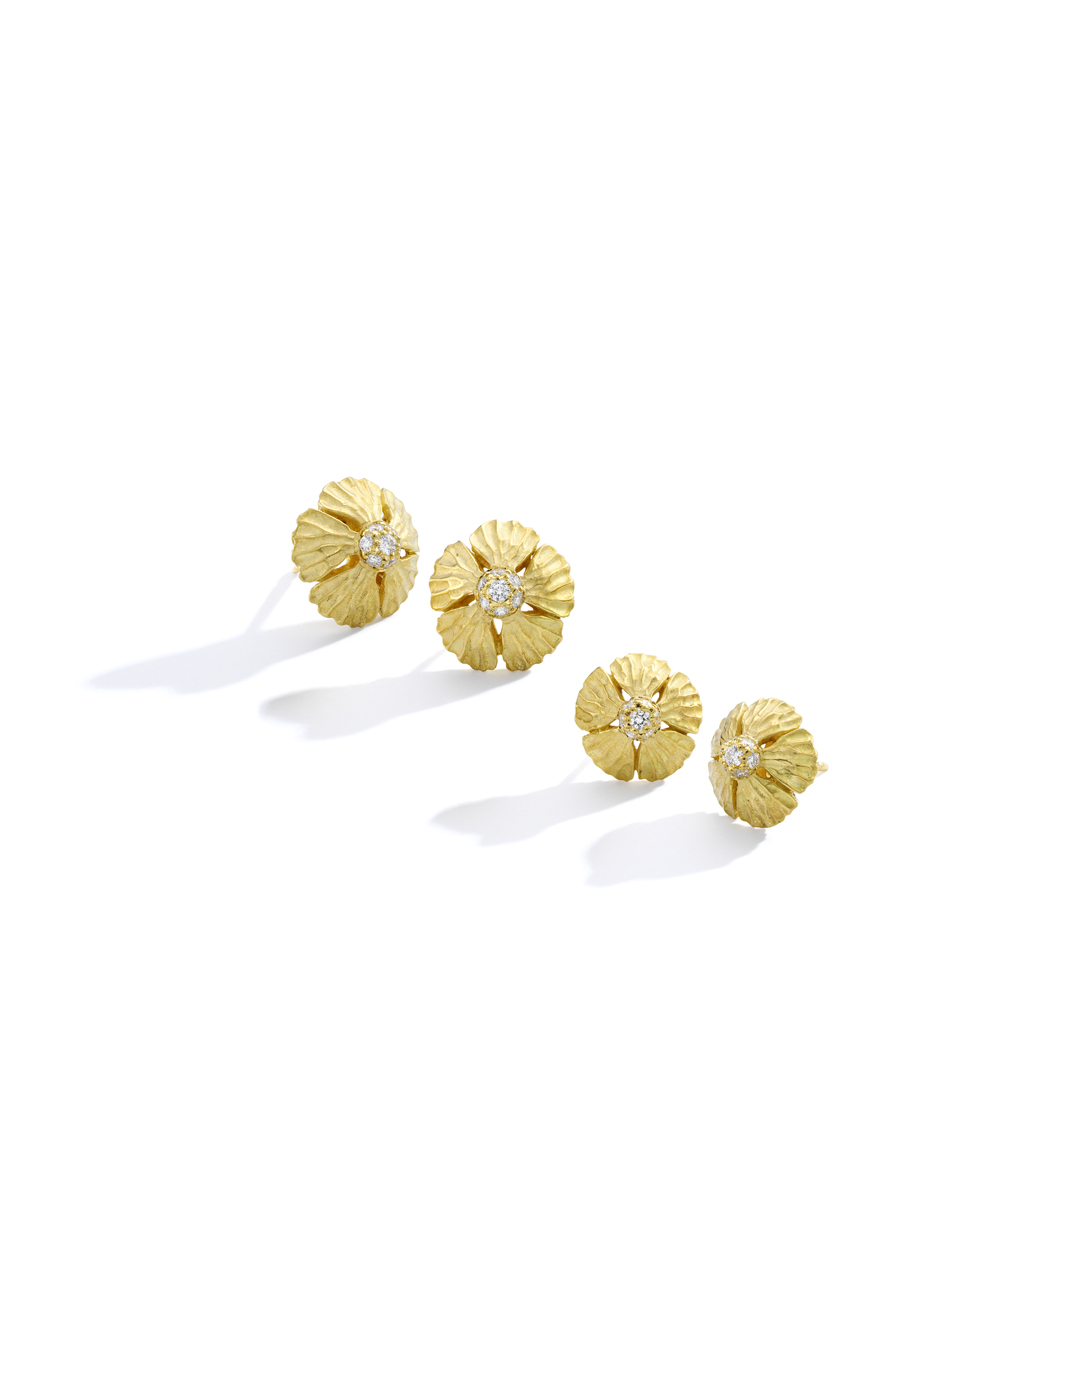 mish_products_earrings_StrawFlwr